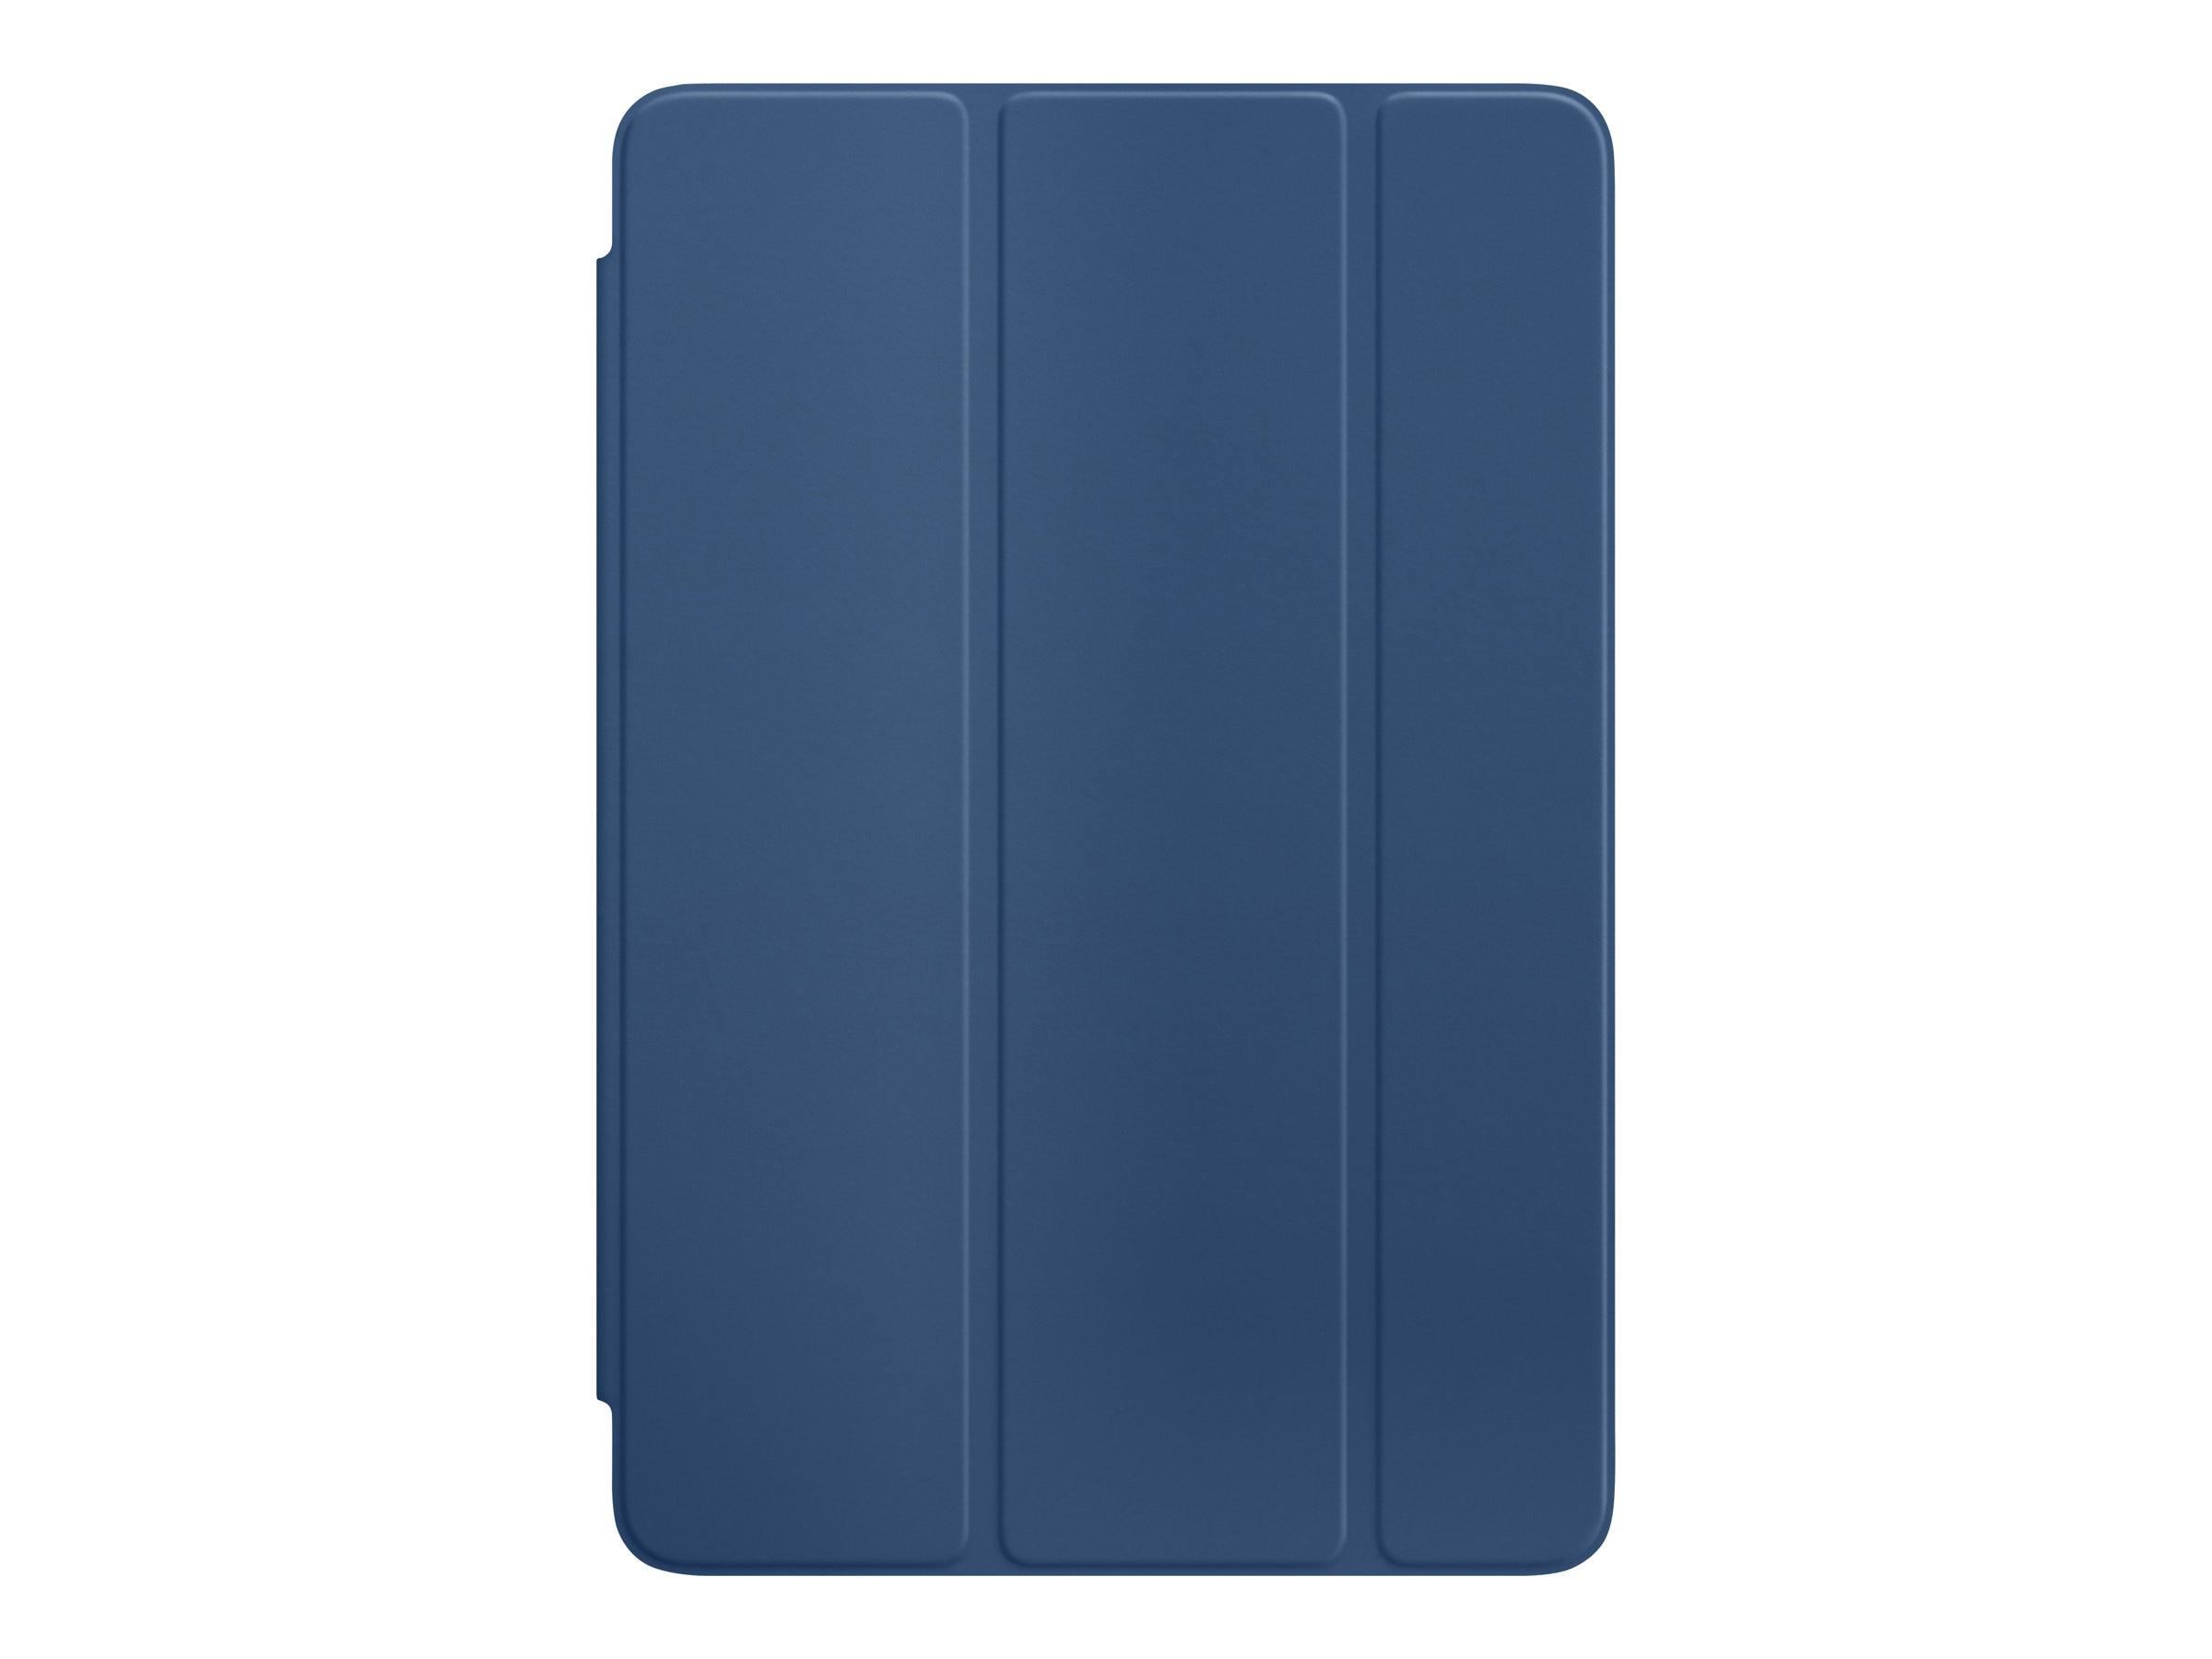 Apple Smart Cover for iPad mini 4, Ocean Blue, MN092ZM/A